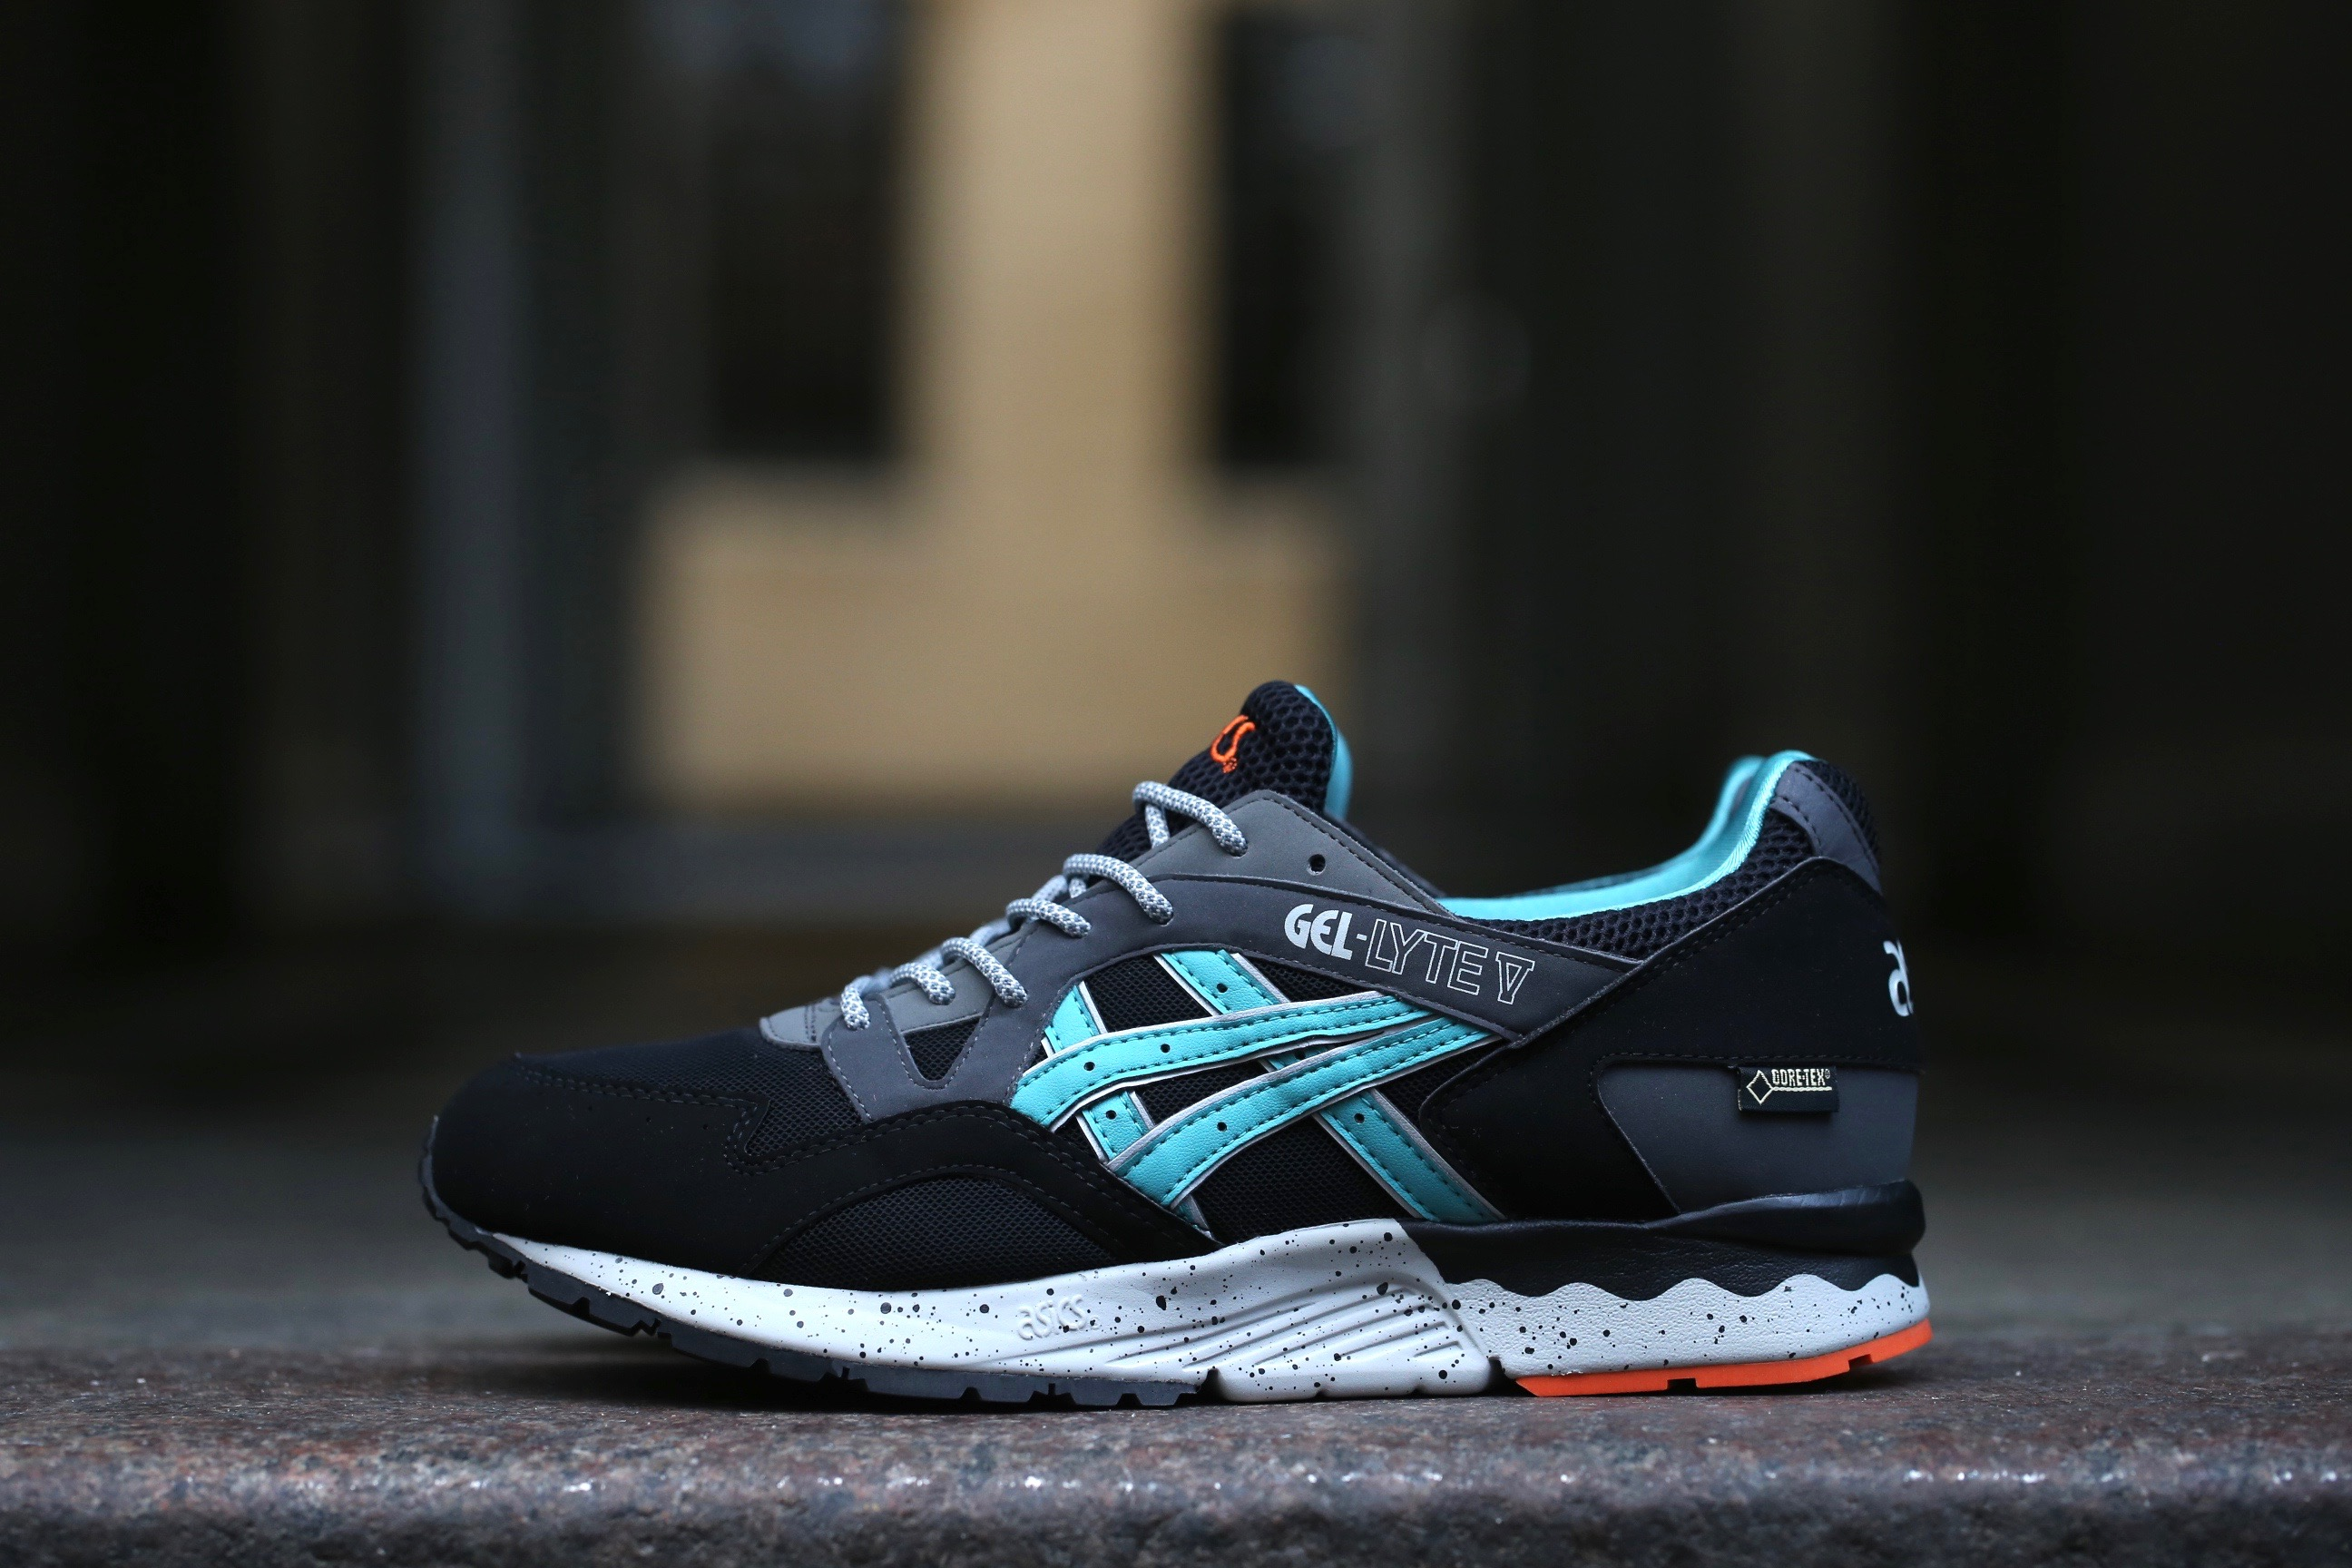 asics mens gel-lyte v shoe - latigo bay/black